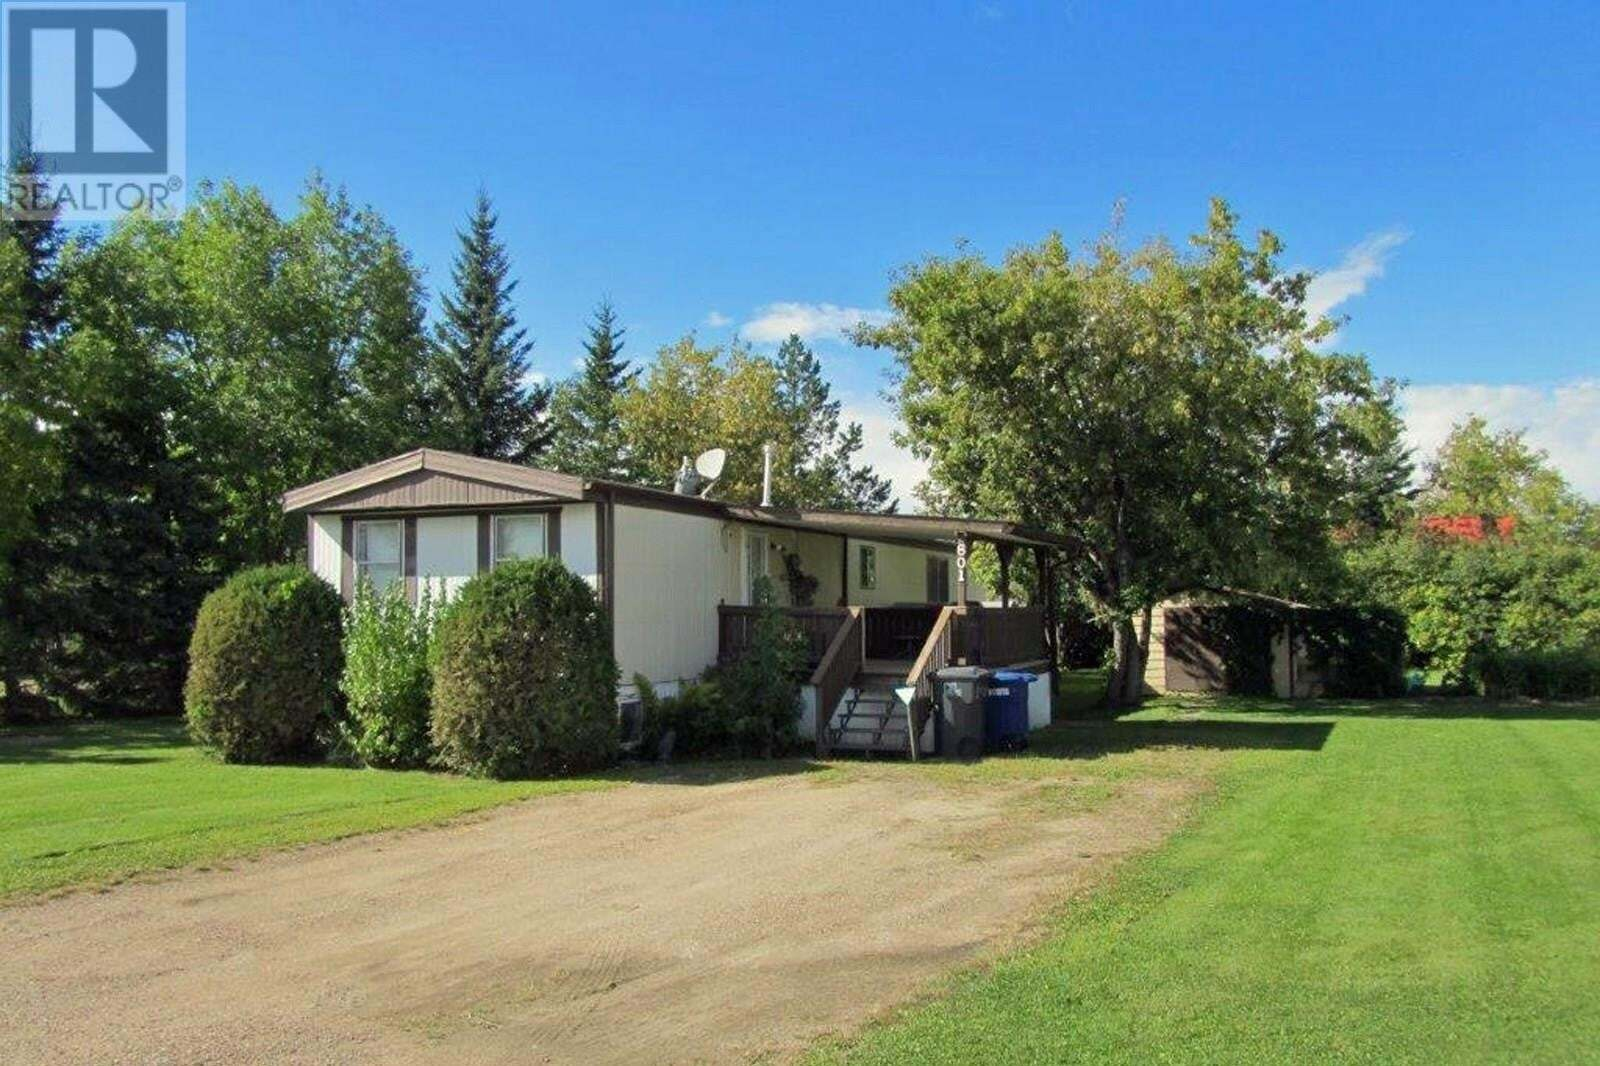 Residential property for sale at 601 Sergent Ave Meadow Lake Saskatchewan - MLS: SK824622